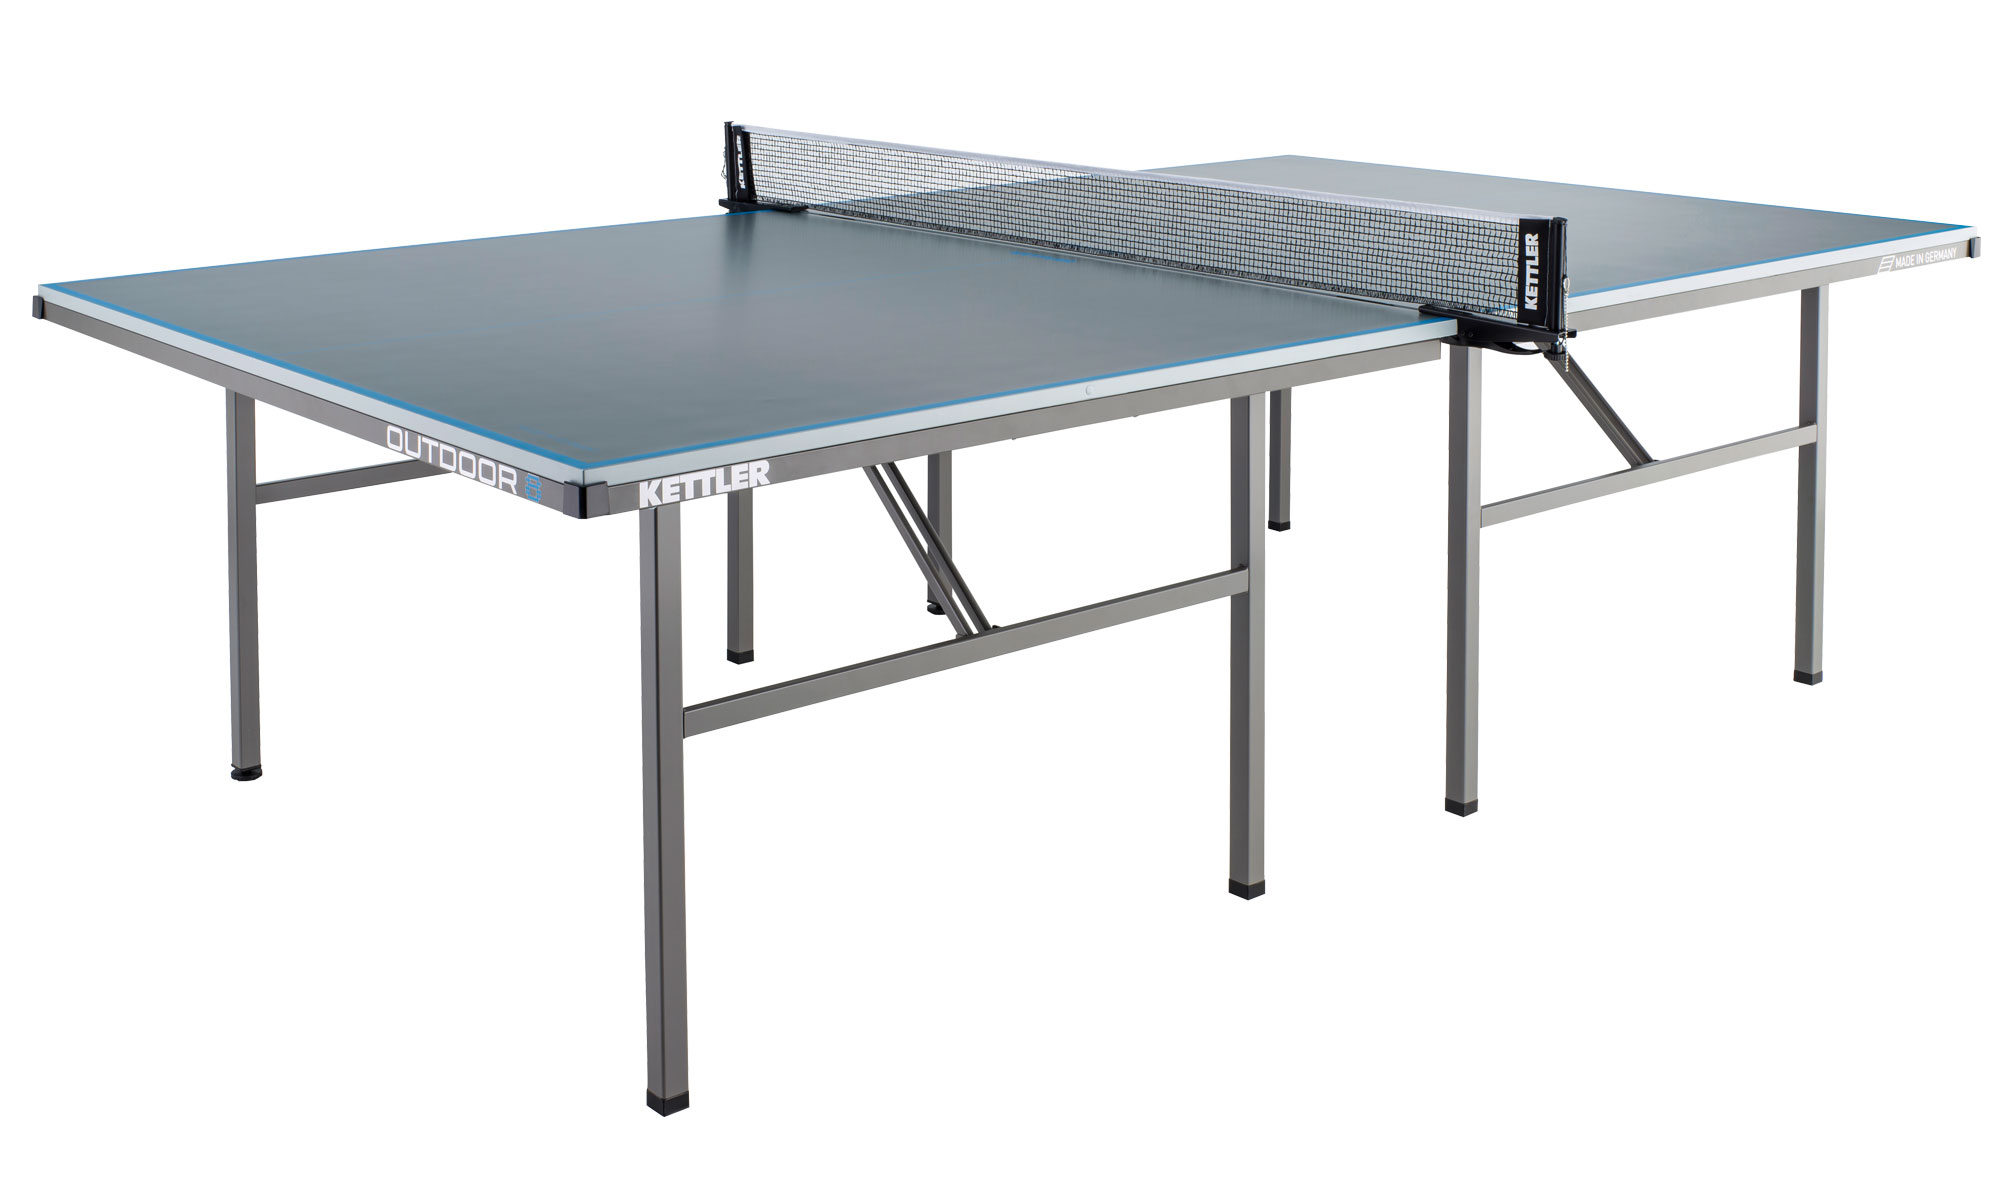 Kettler classic outdoor 8 table tennis table for Table kettler